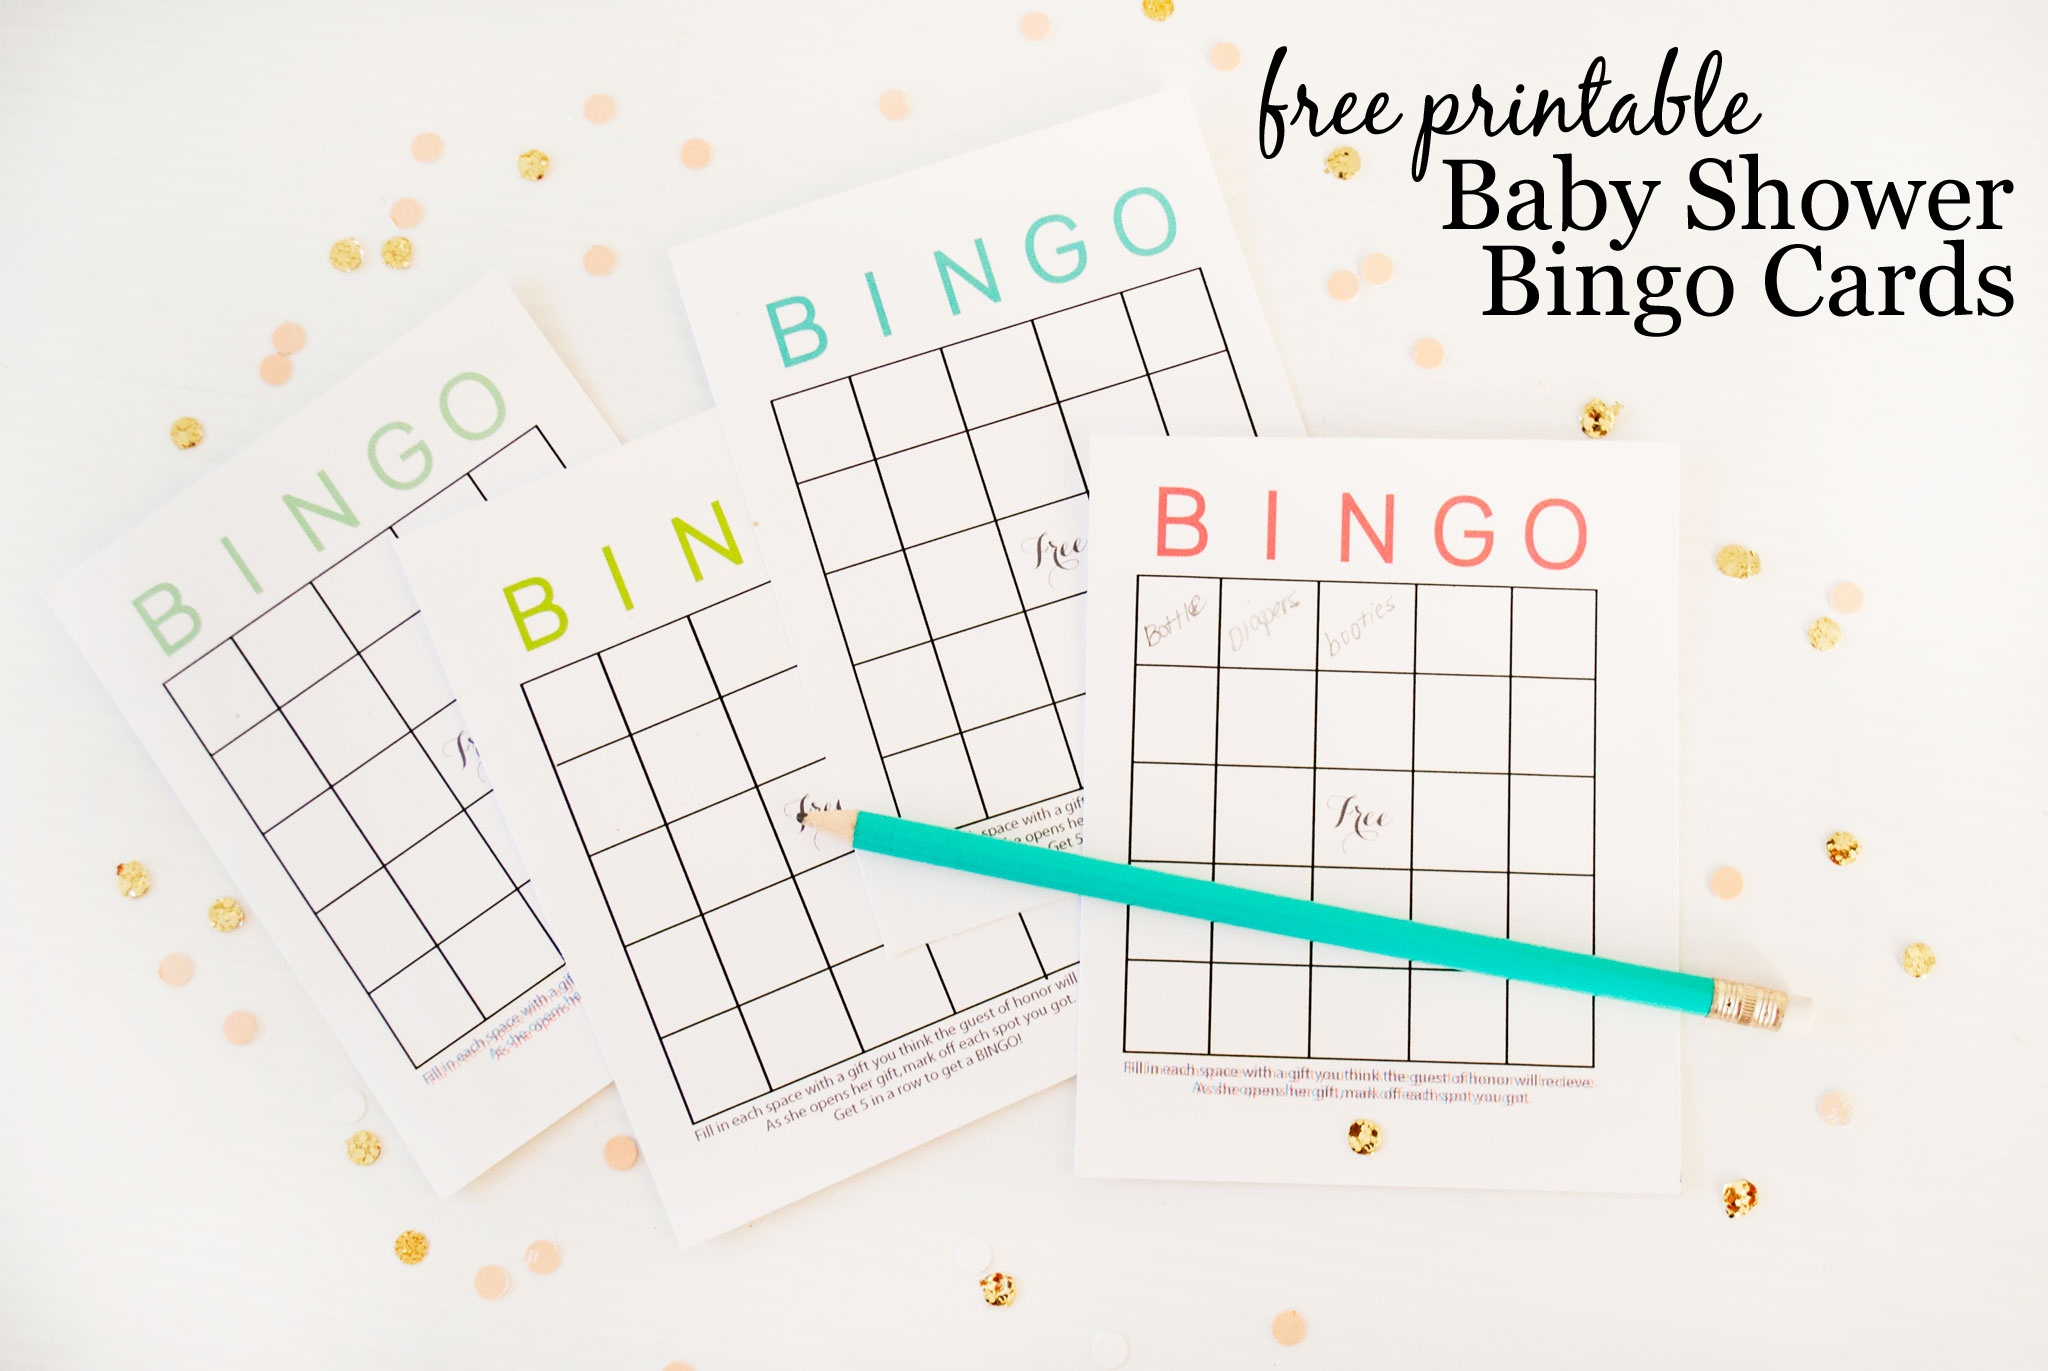 Free Printable Baby Shower Bingo Cards - Project Nursery - 50 Free Printable Baby Bingo Cards